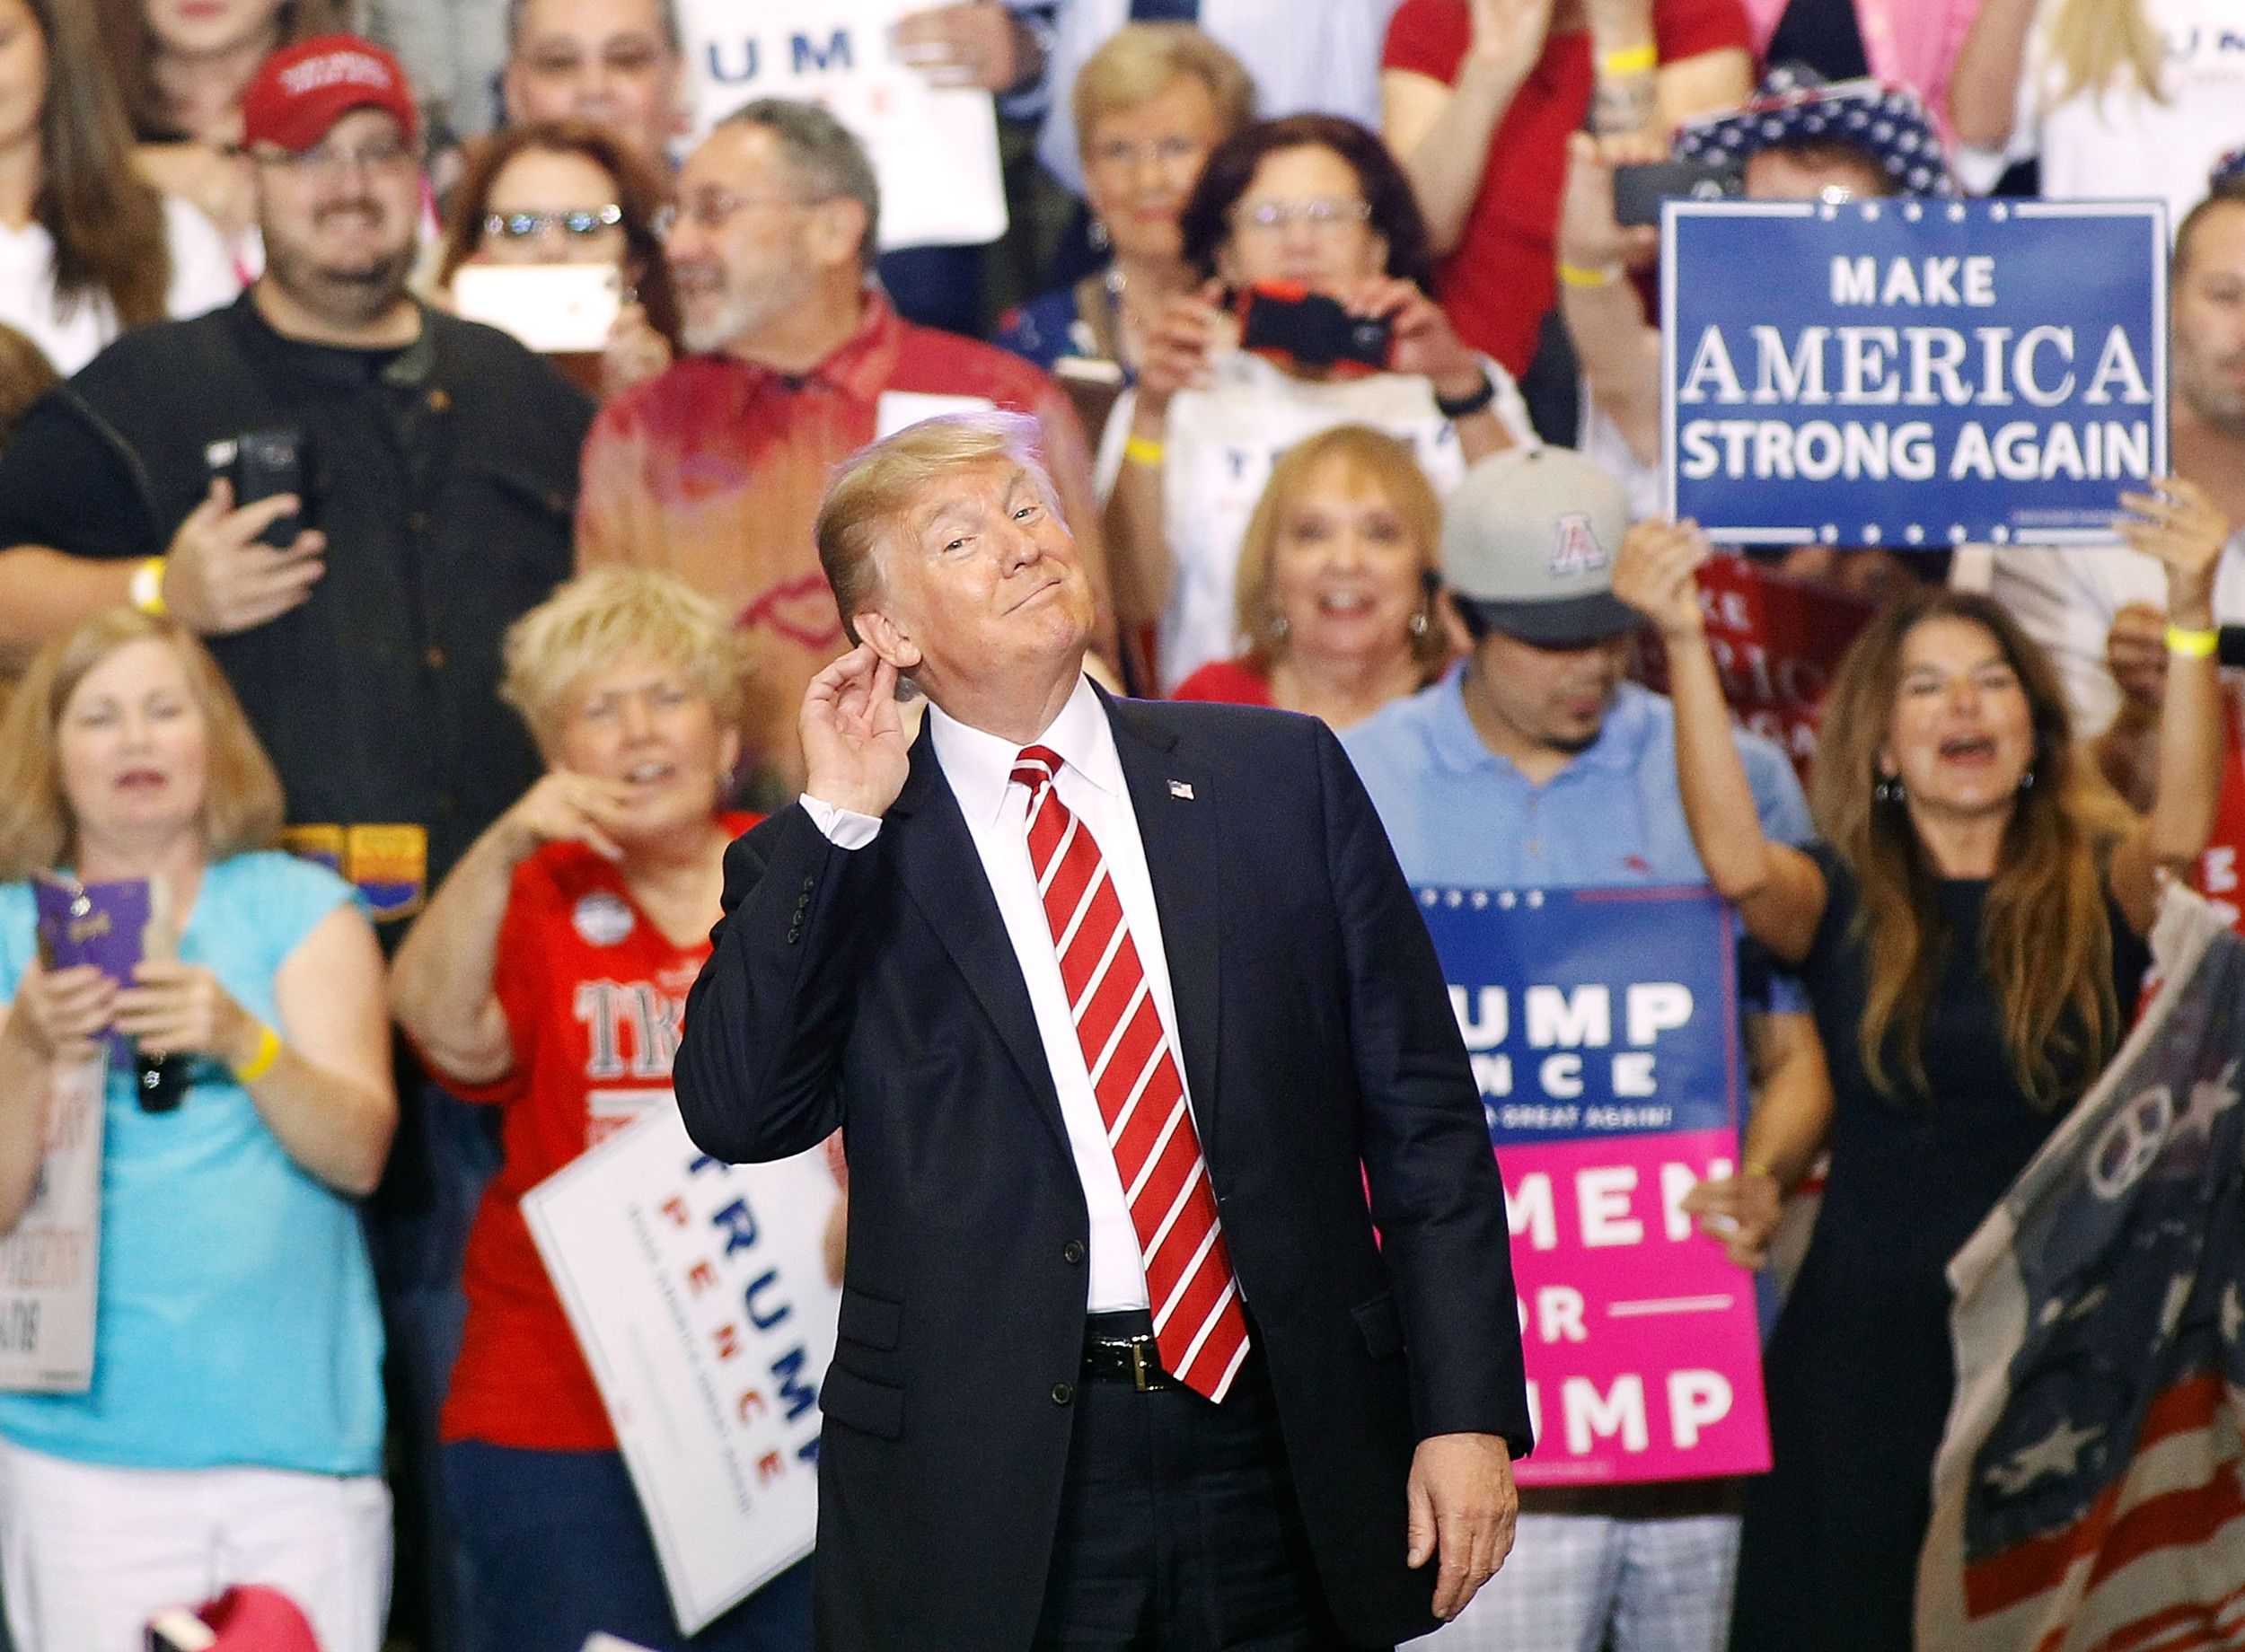 Image: Trump gestures to the crowd at a rally in Phoenix